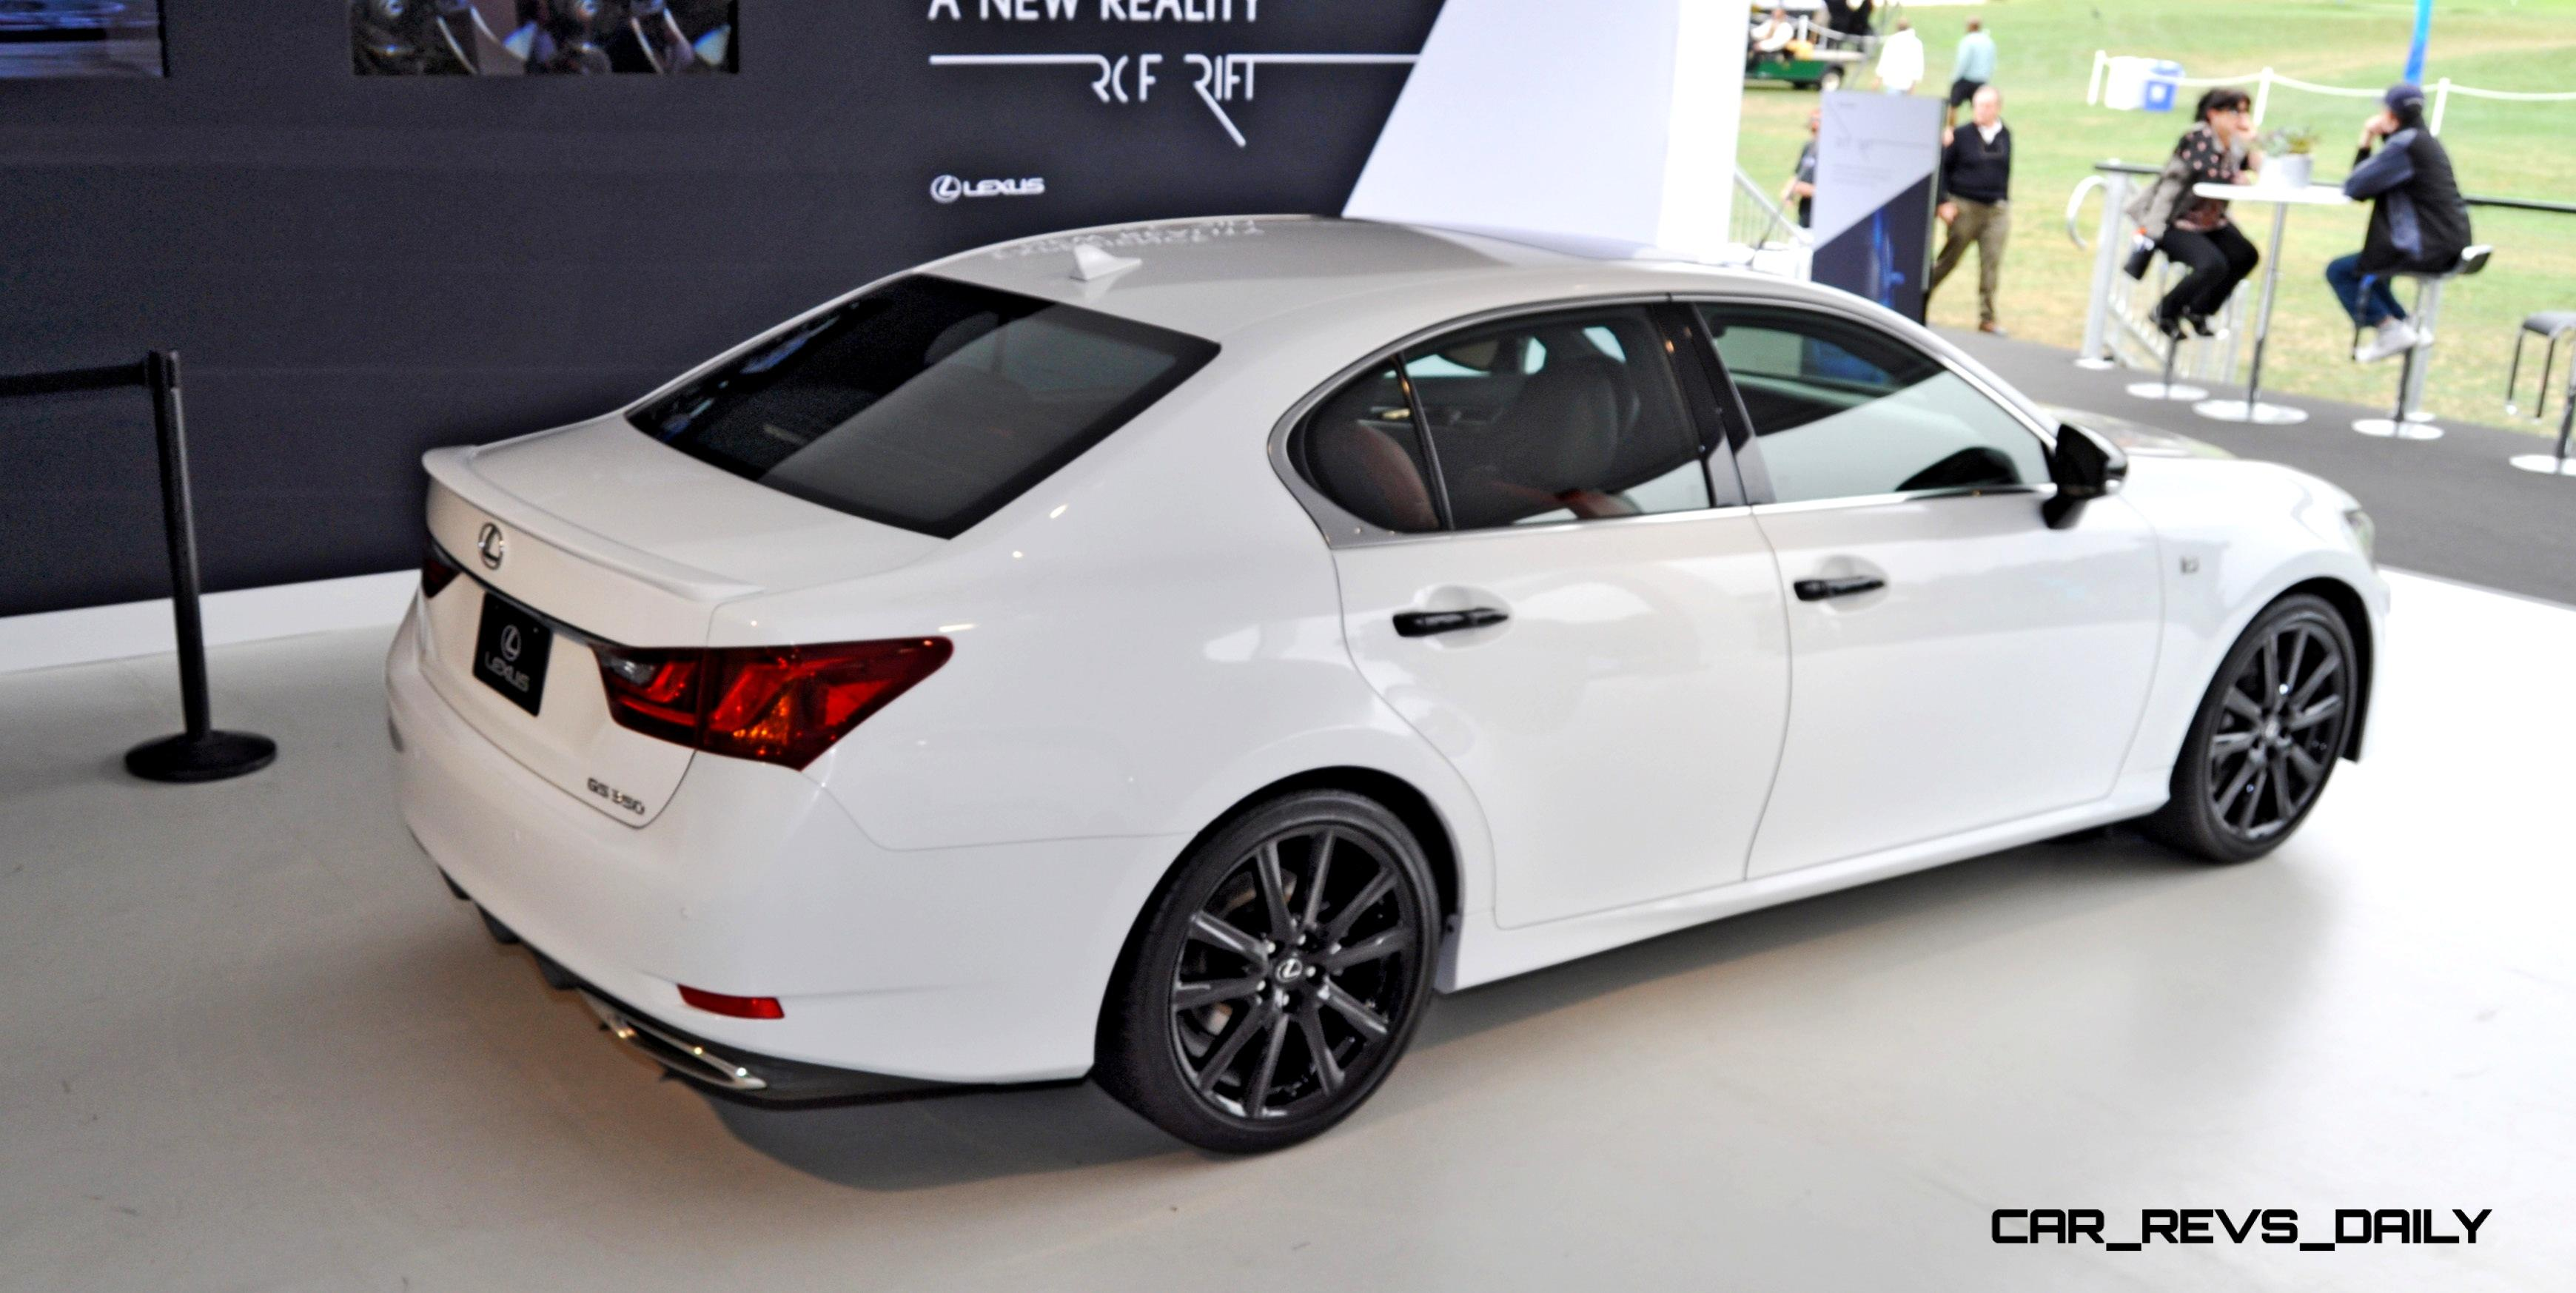 2015 Lexus GS350 Crafted Line Aces Style Mood in Bright White Over